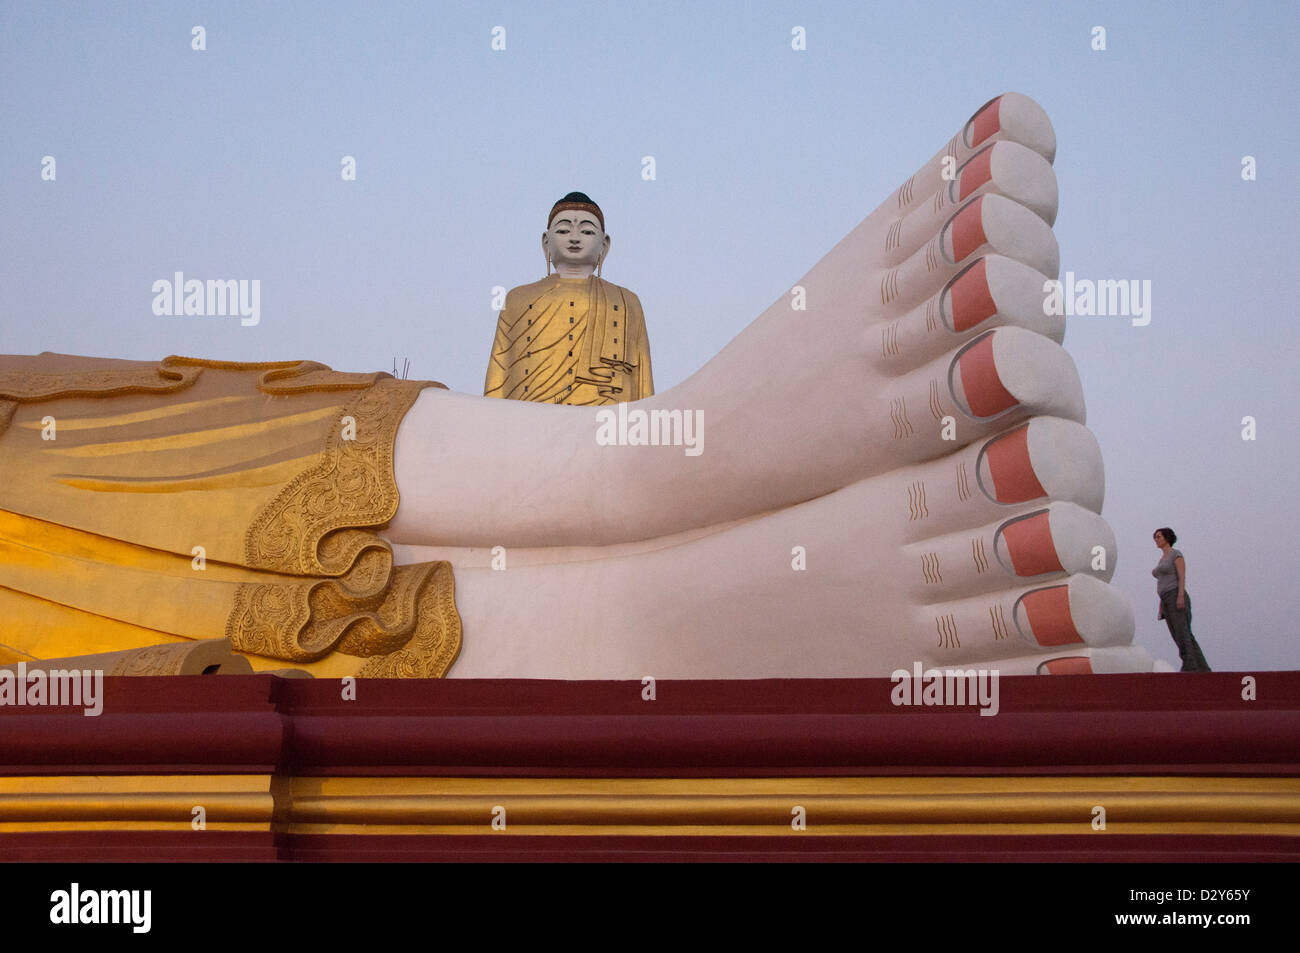 Feet of enormous reclining Buddha with Bodhi Tataung, giant standing buddha behind. Monywa, Myanmar (Burma) - Stock Image